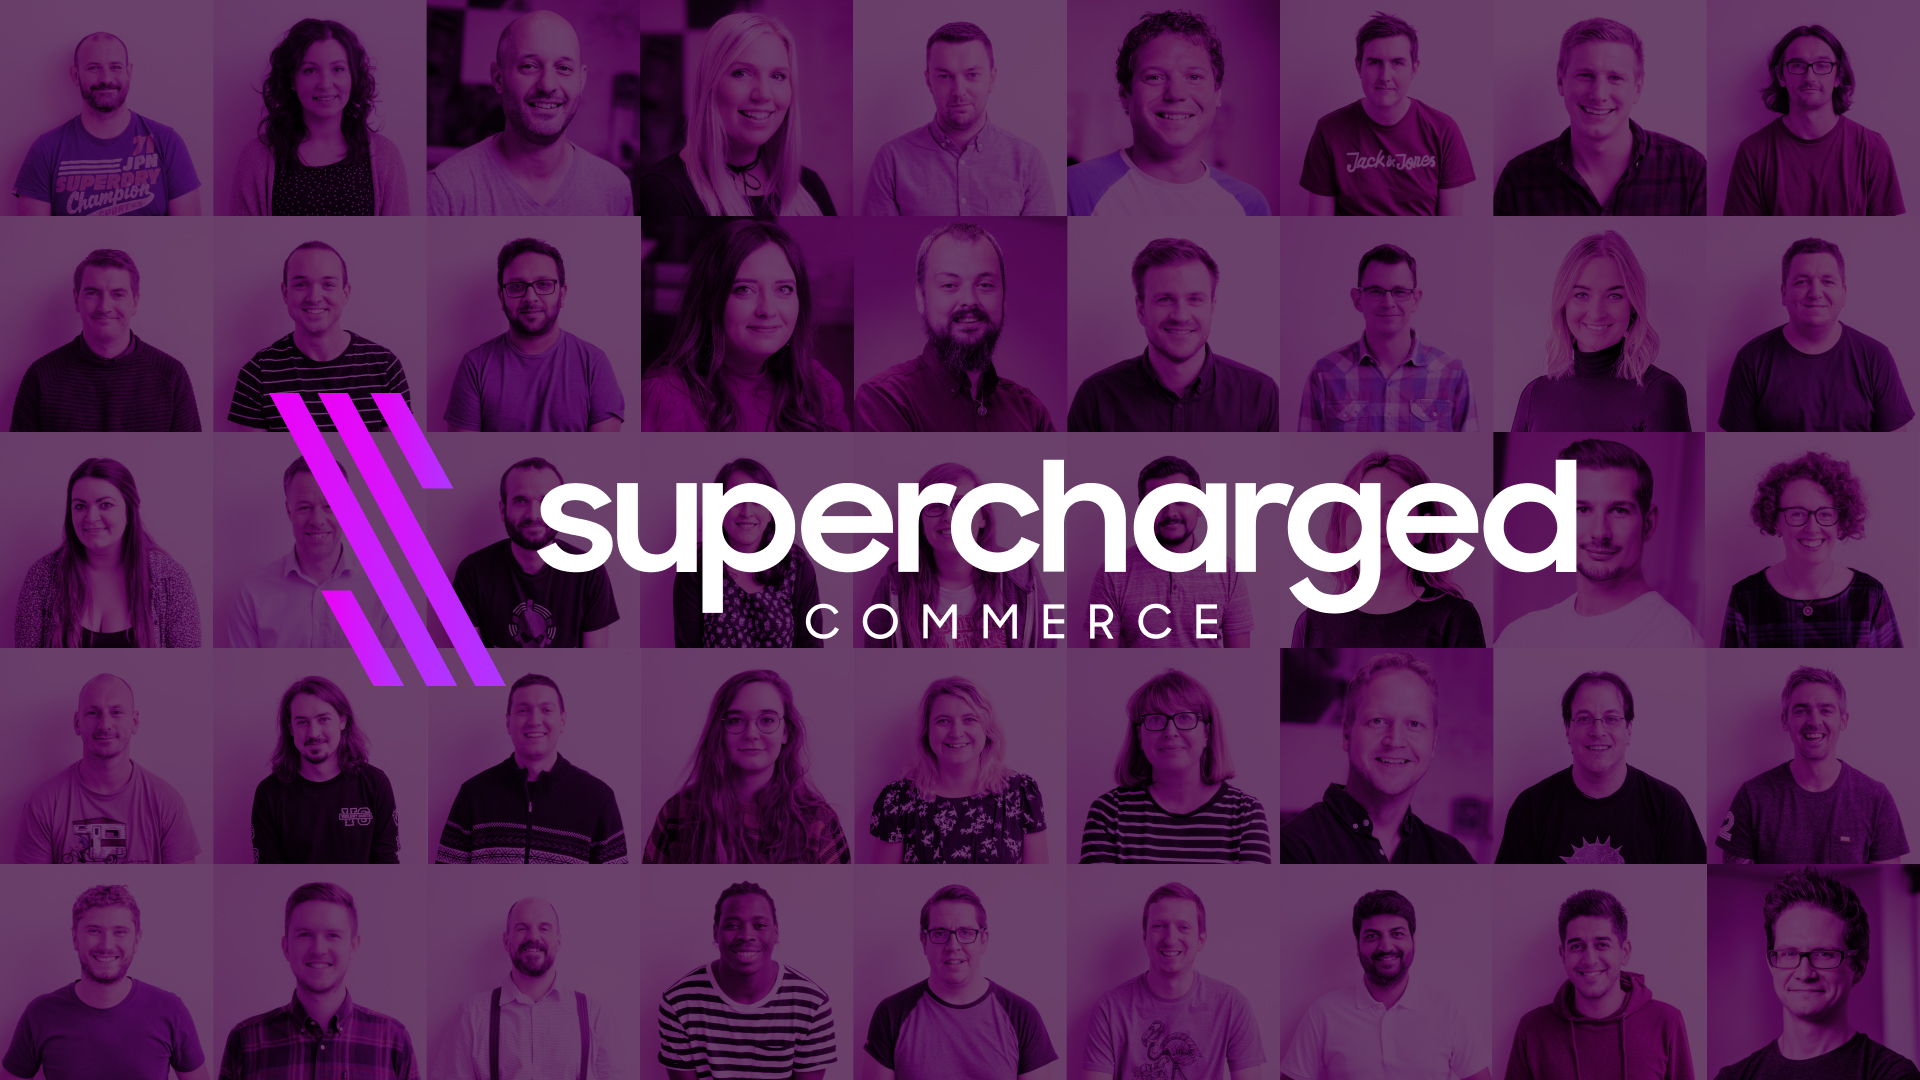 Our new commerce agency: supercharged commerce